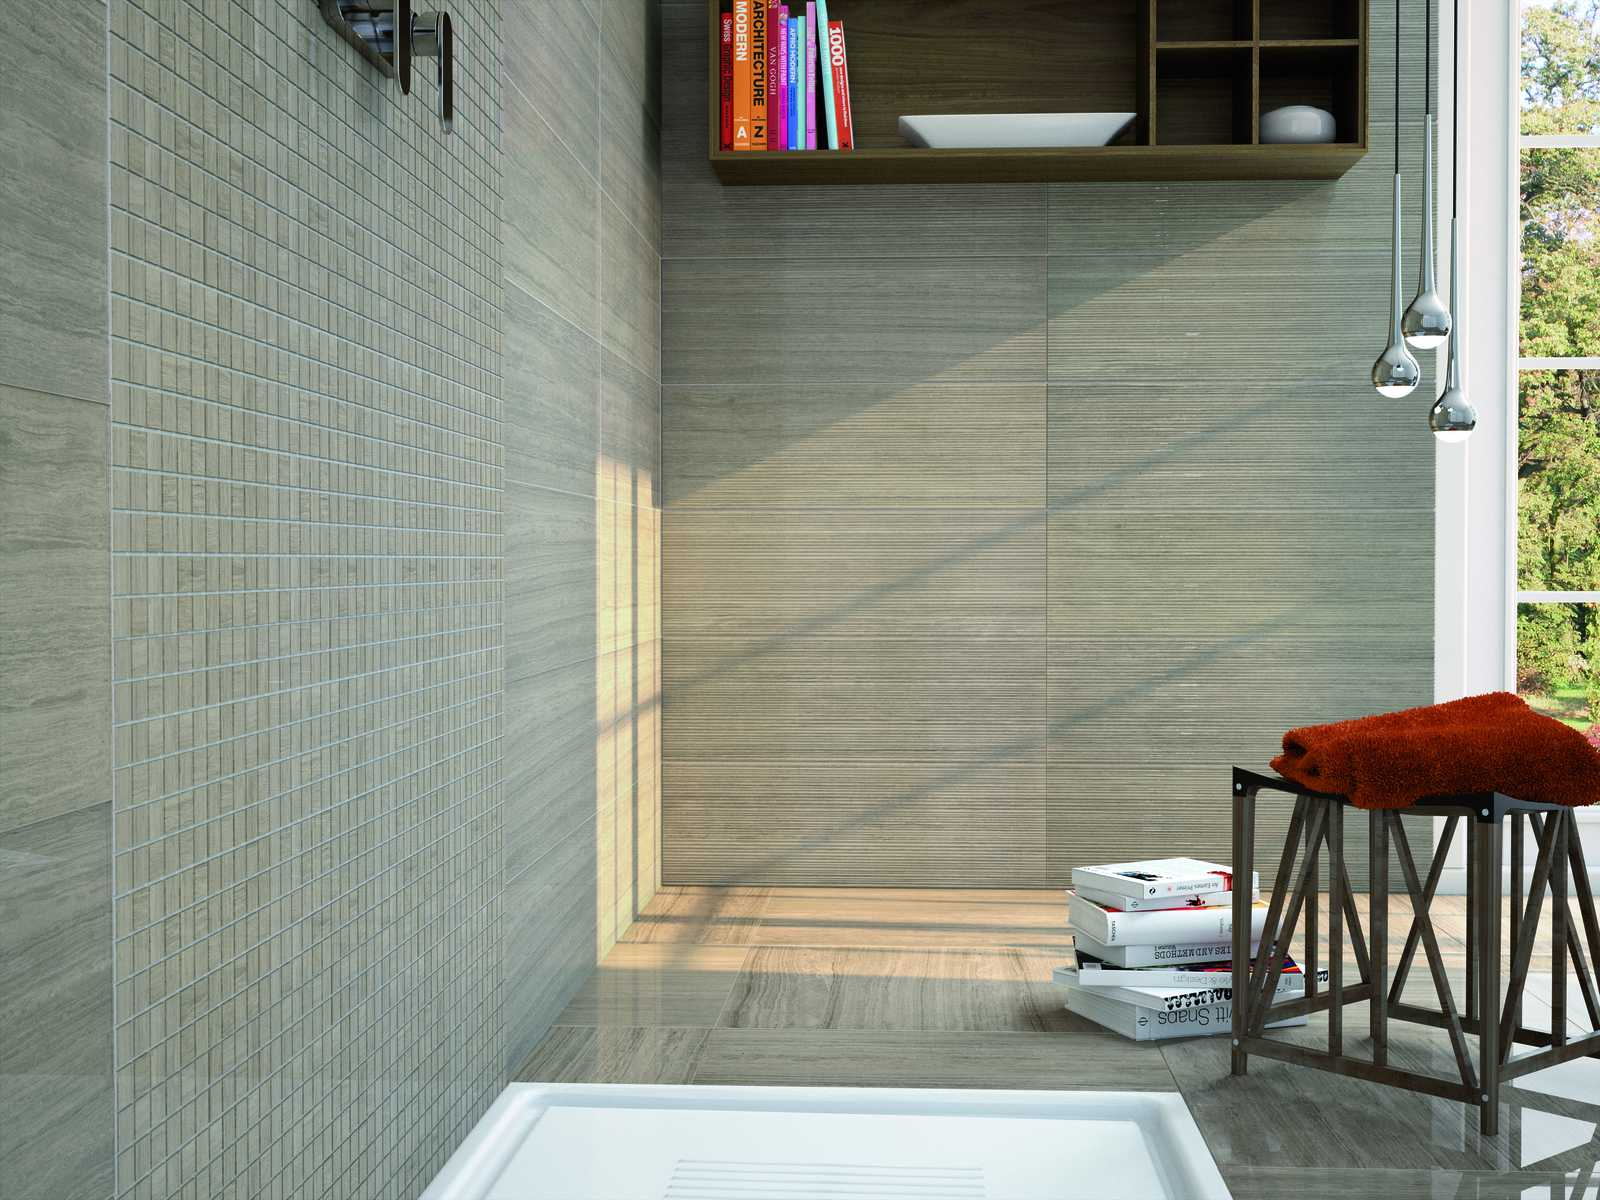 Montreal rectified polished porcelain stoneware marazzi for Gres porcellanato carrelage